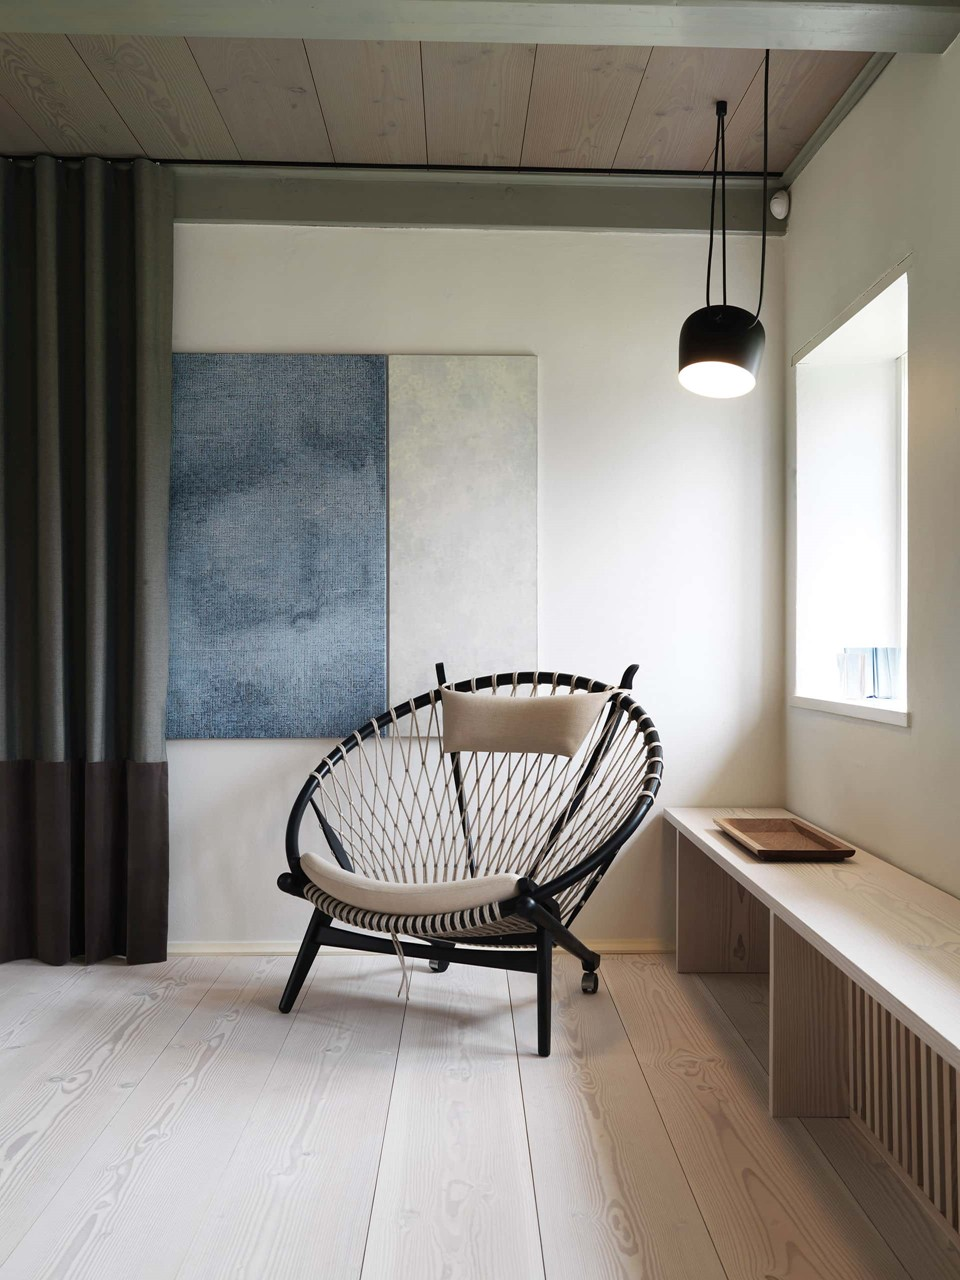 douglas fir floor lye white soap underfloor heating the circle chair dinesen country home.jpg